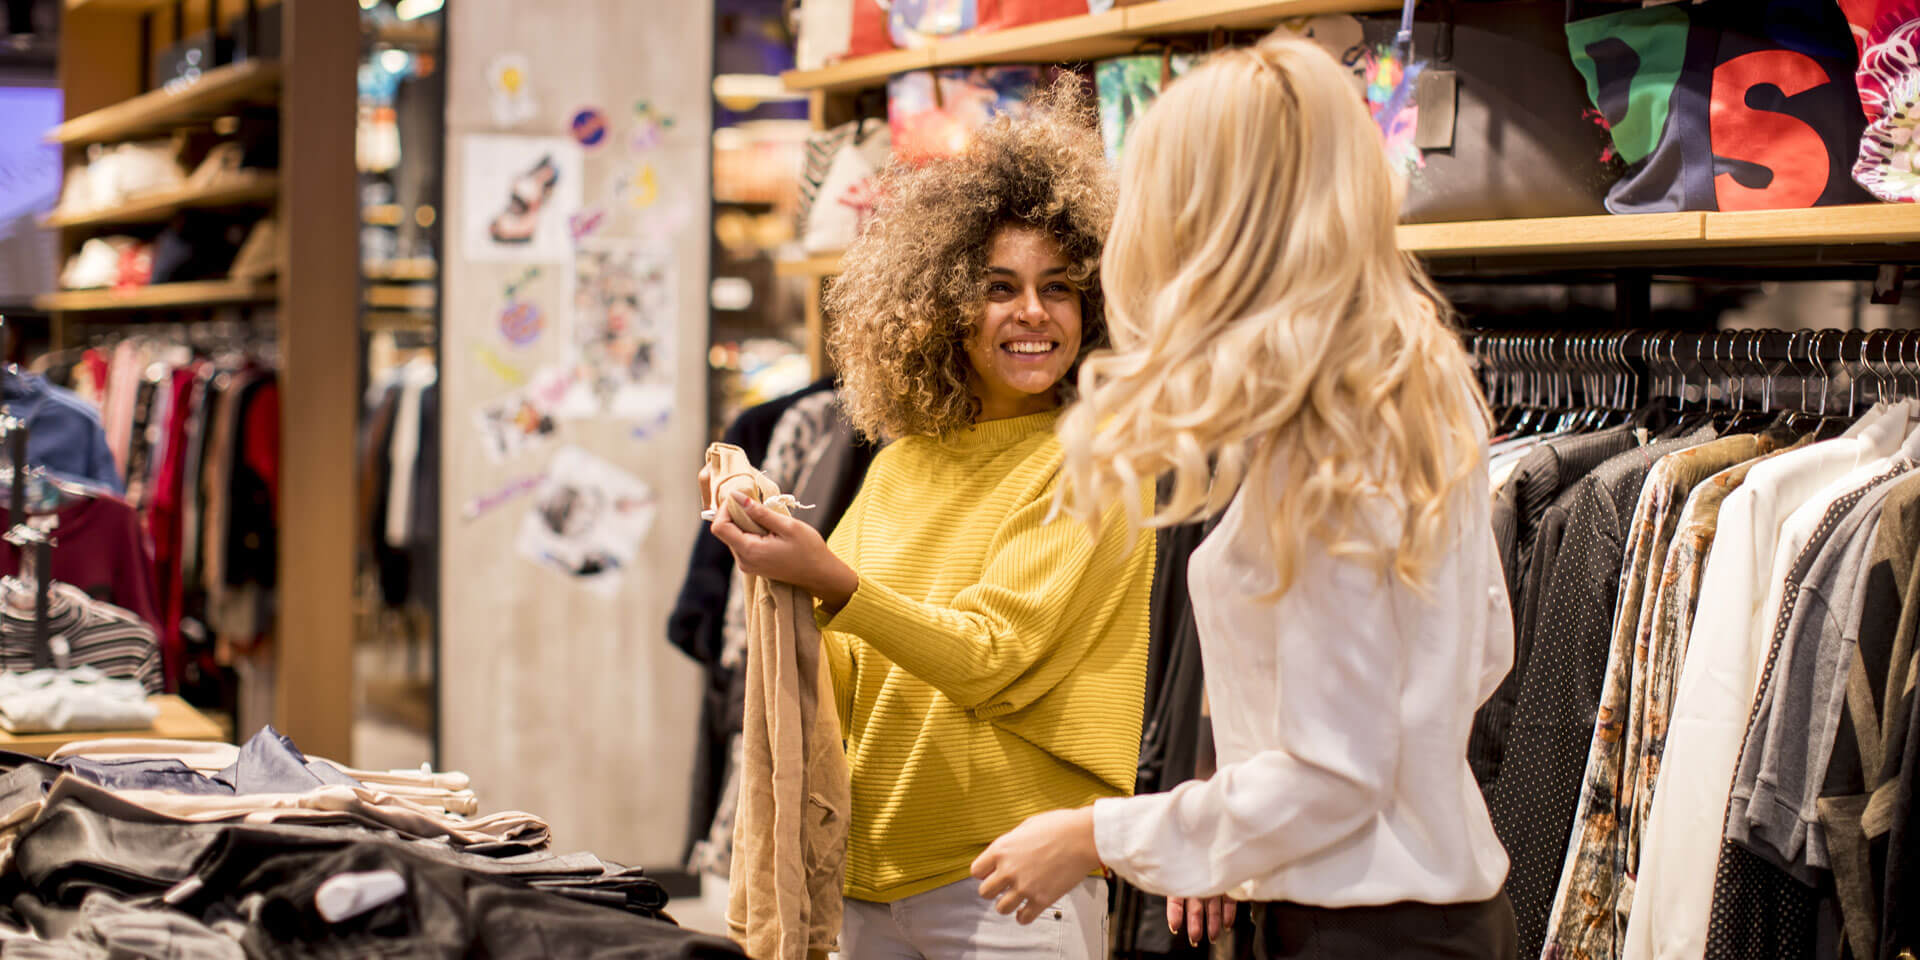 5 ways to keep customers loyal to your retail brand in a post-Covid world